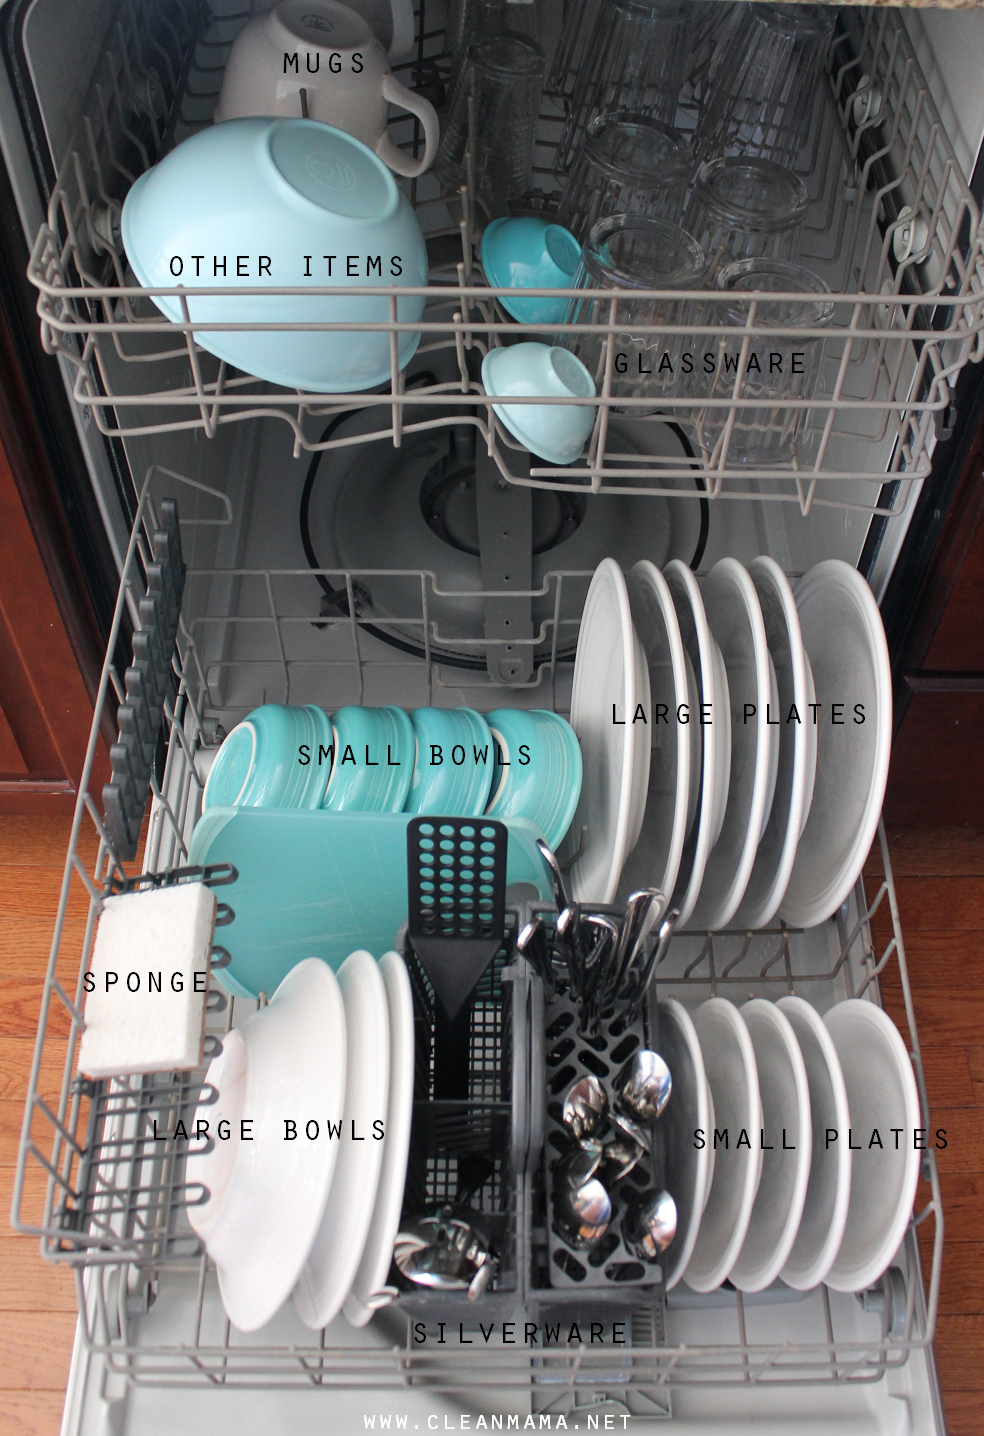 The Right Way to Load a Dishwasher | Dishwashers, Clean mama and ...